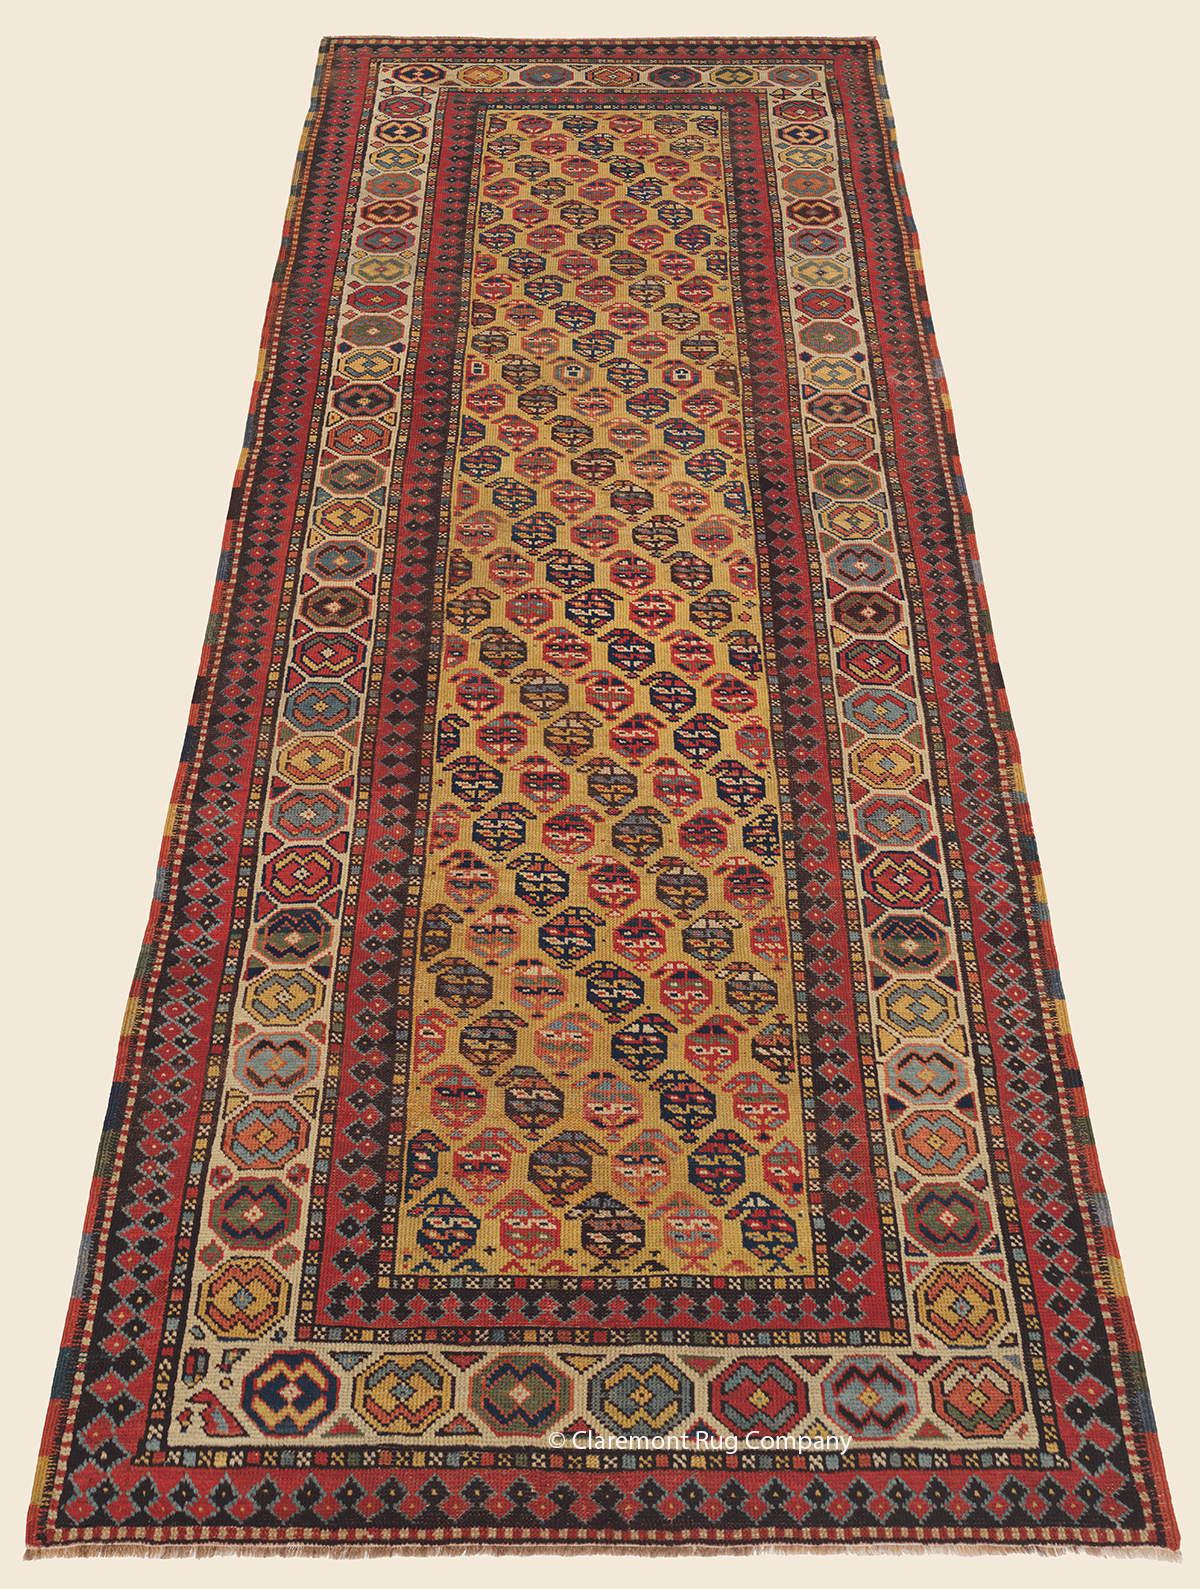 Caucasian Gendje Antique 19th century Oriental Runner Rug with Saffron field and crafted borders